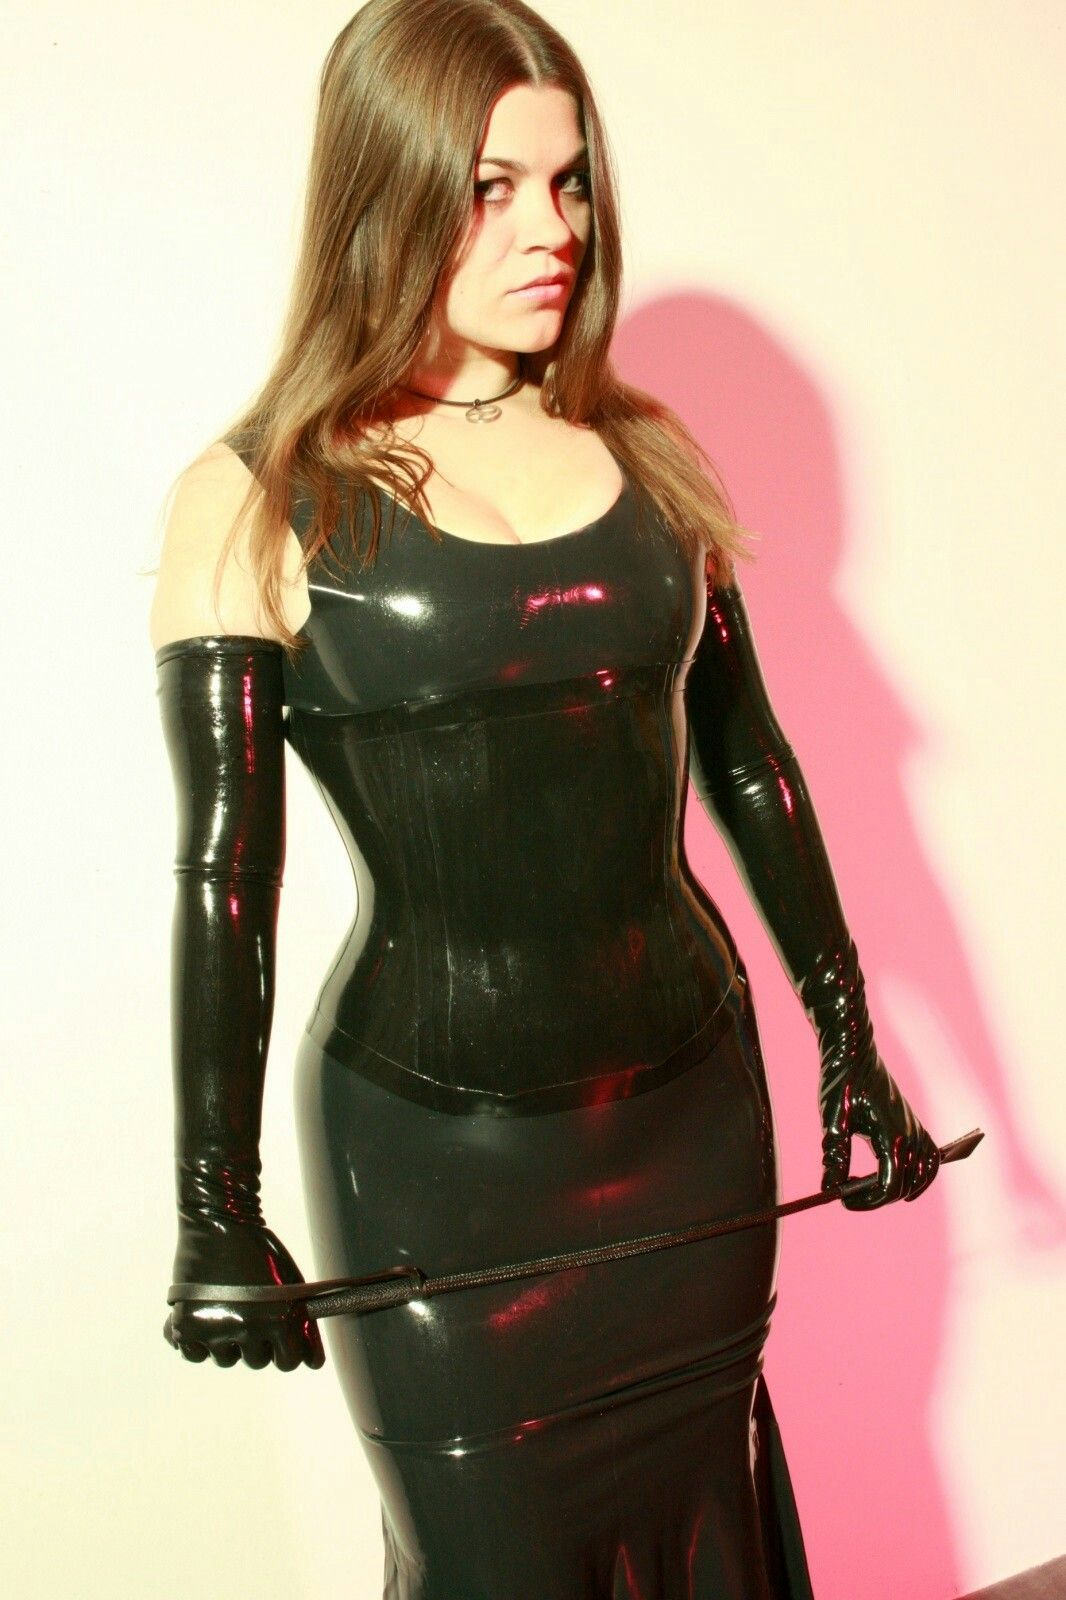 Pin von UseFetish auf Latex Domina | Pinterest | Latex und Domina